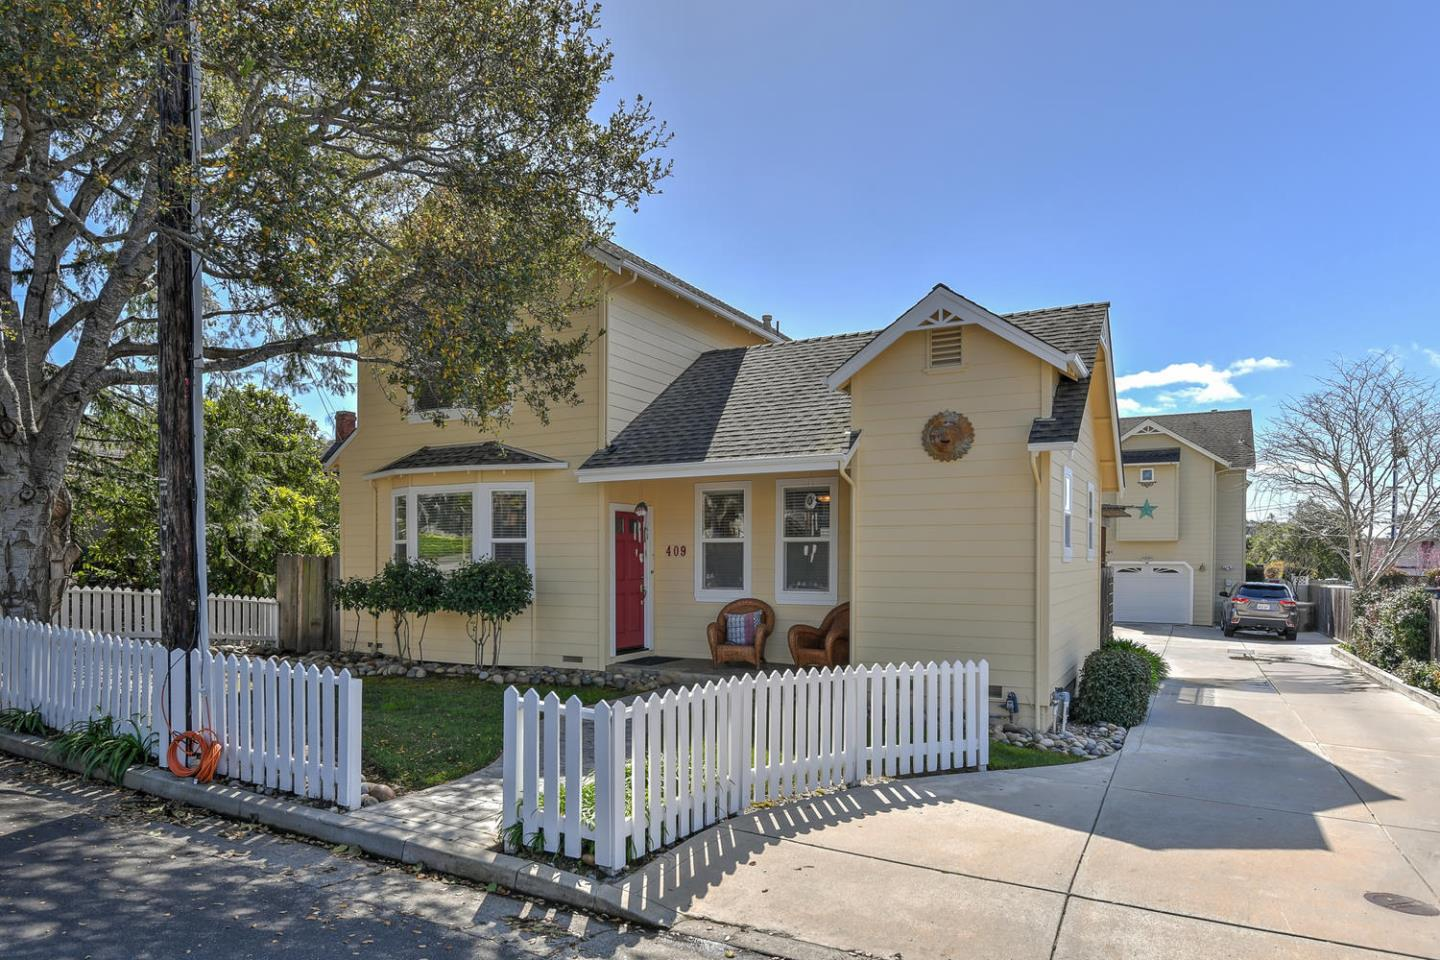 Detail Gallery Image 1 of 19 For 409 Pine St, Capitola, CA, 95010 - 3 Beds | 2 Baths